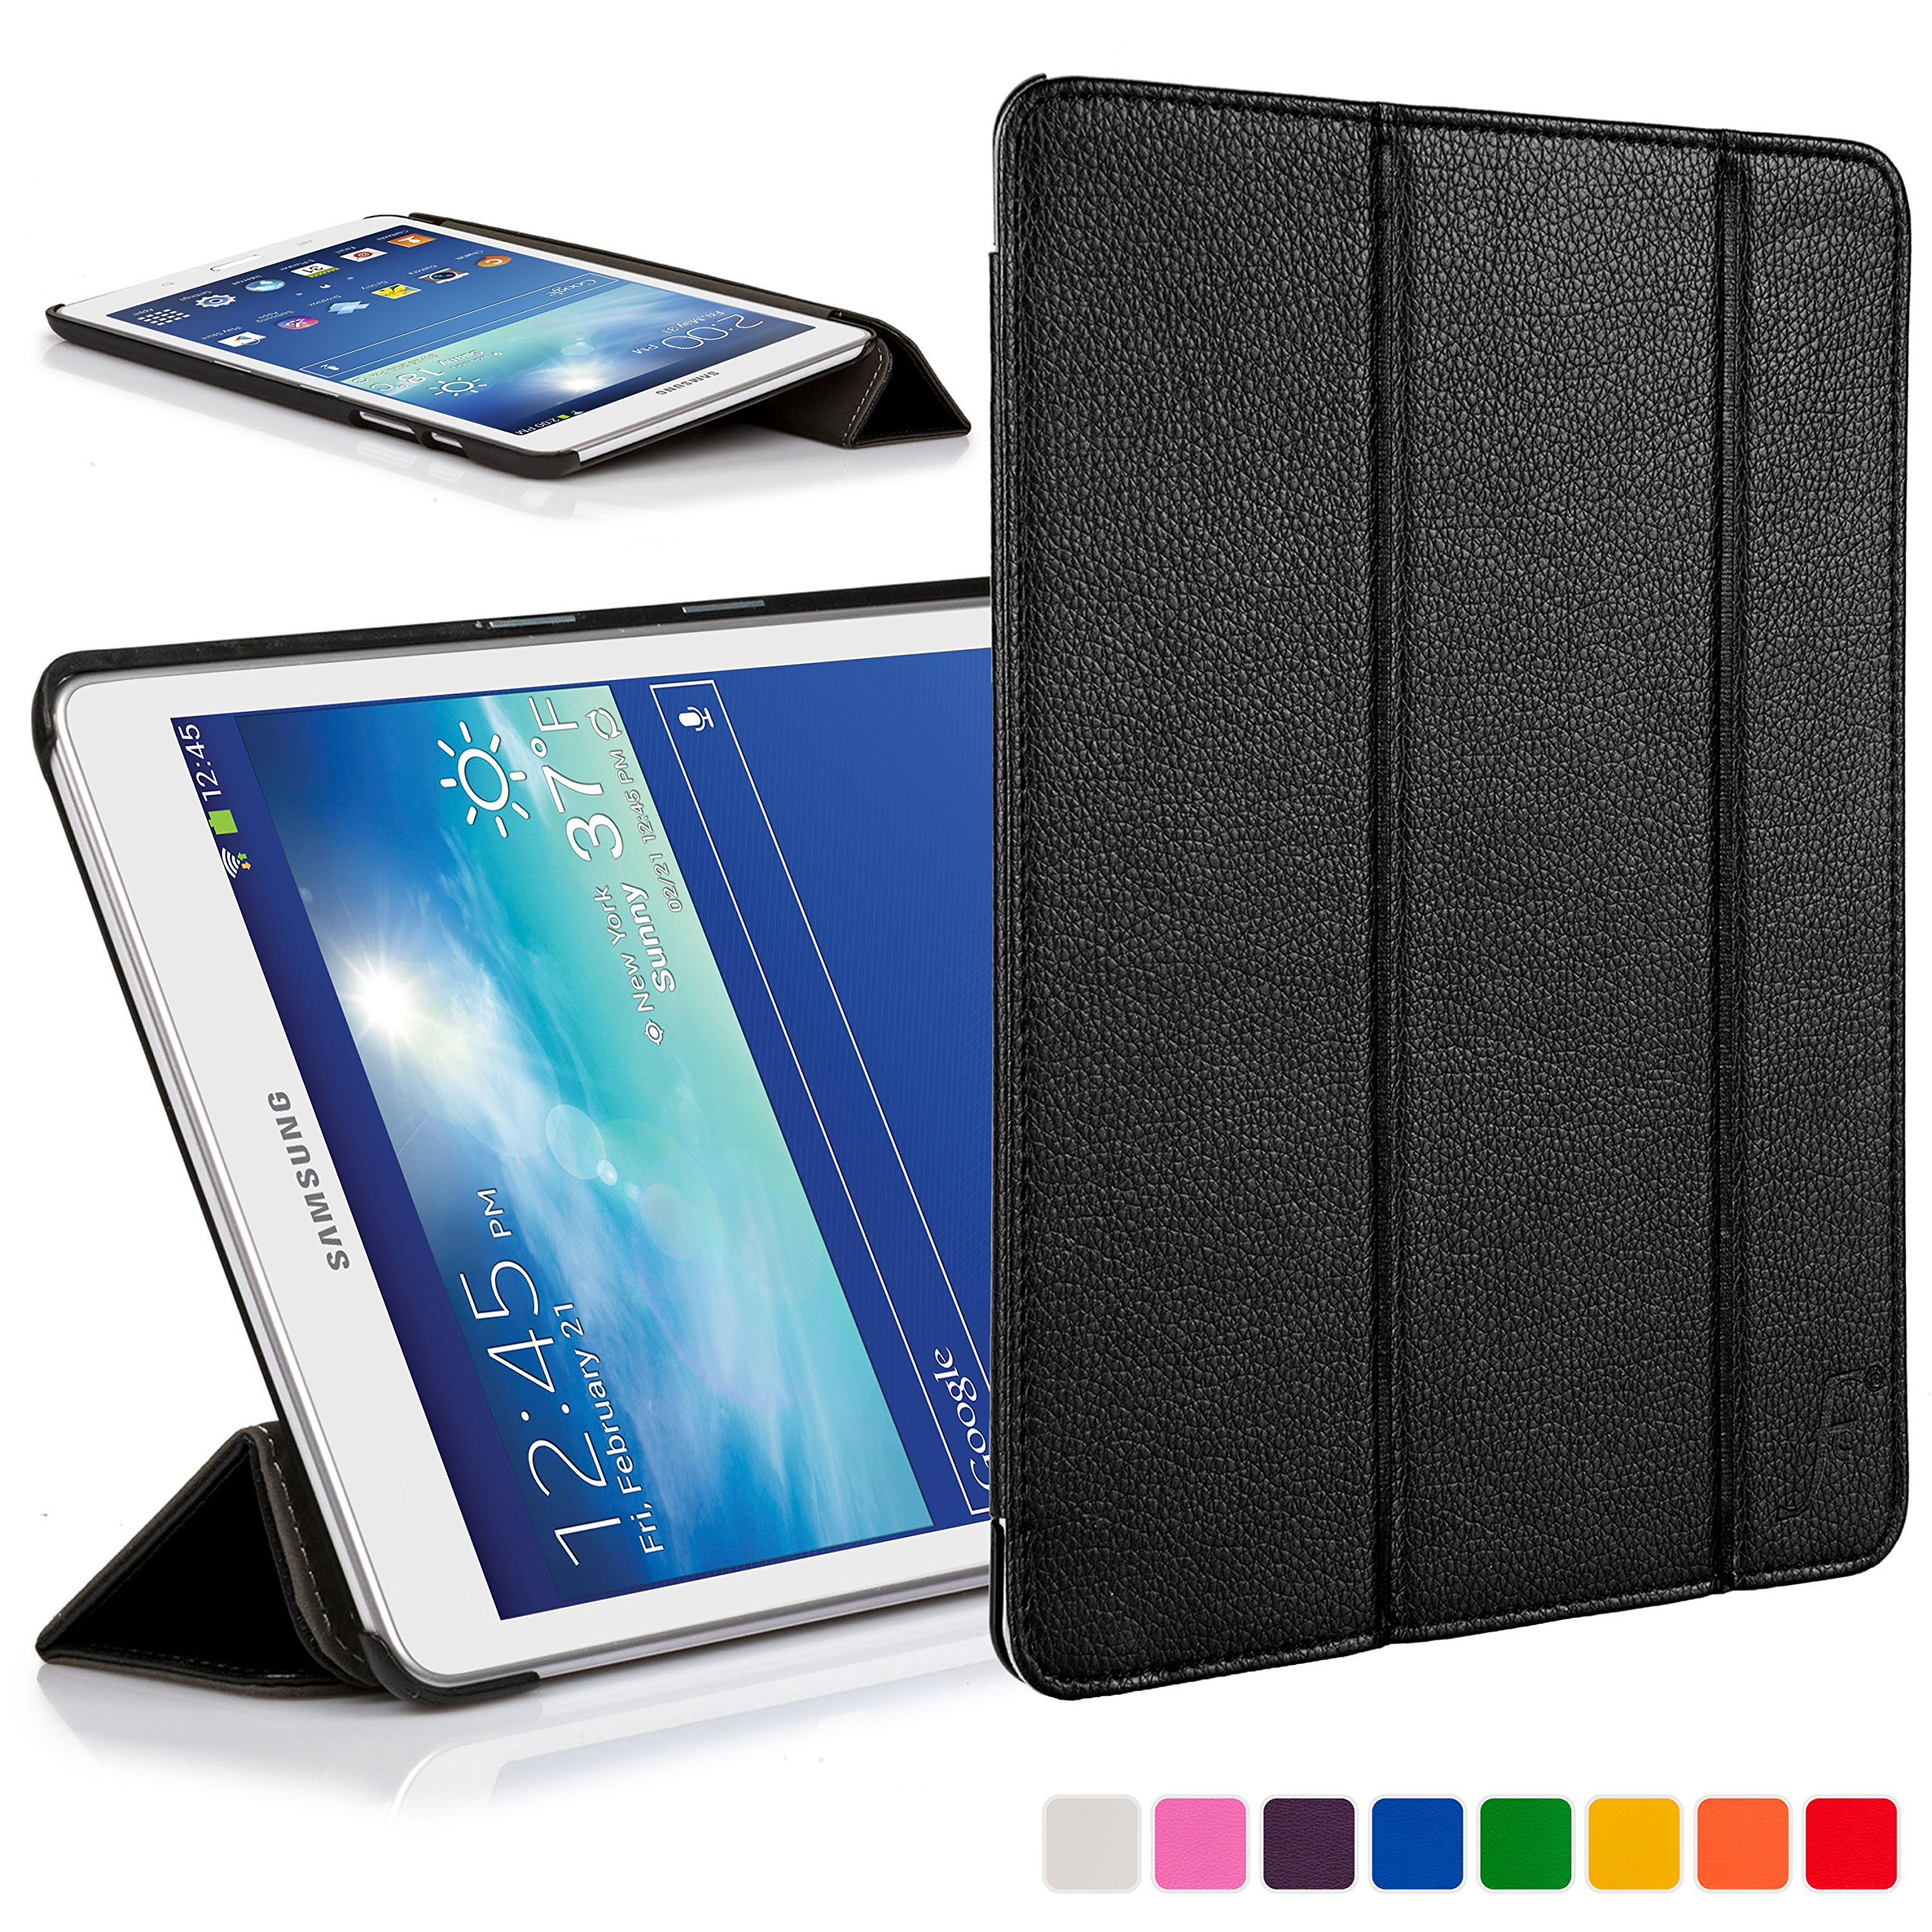 meet 95c85 f5277 Forefront Cases® Samsung Galaxy Tab 3 Lite 7.0 / Tab E Lite 7.0 Leather  Folding Smart Case Cover Stand (BLACK)